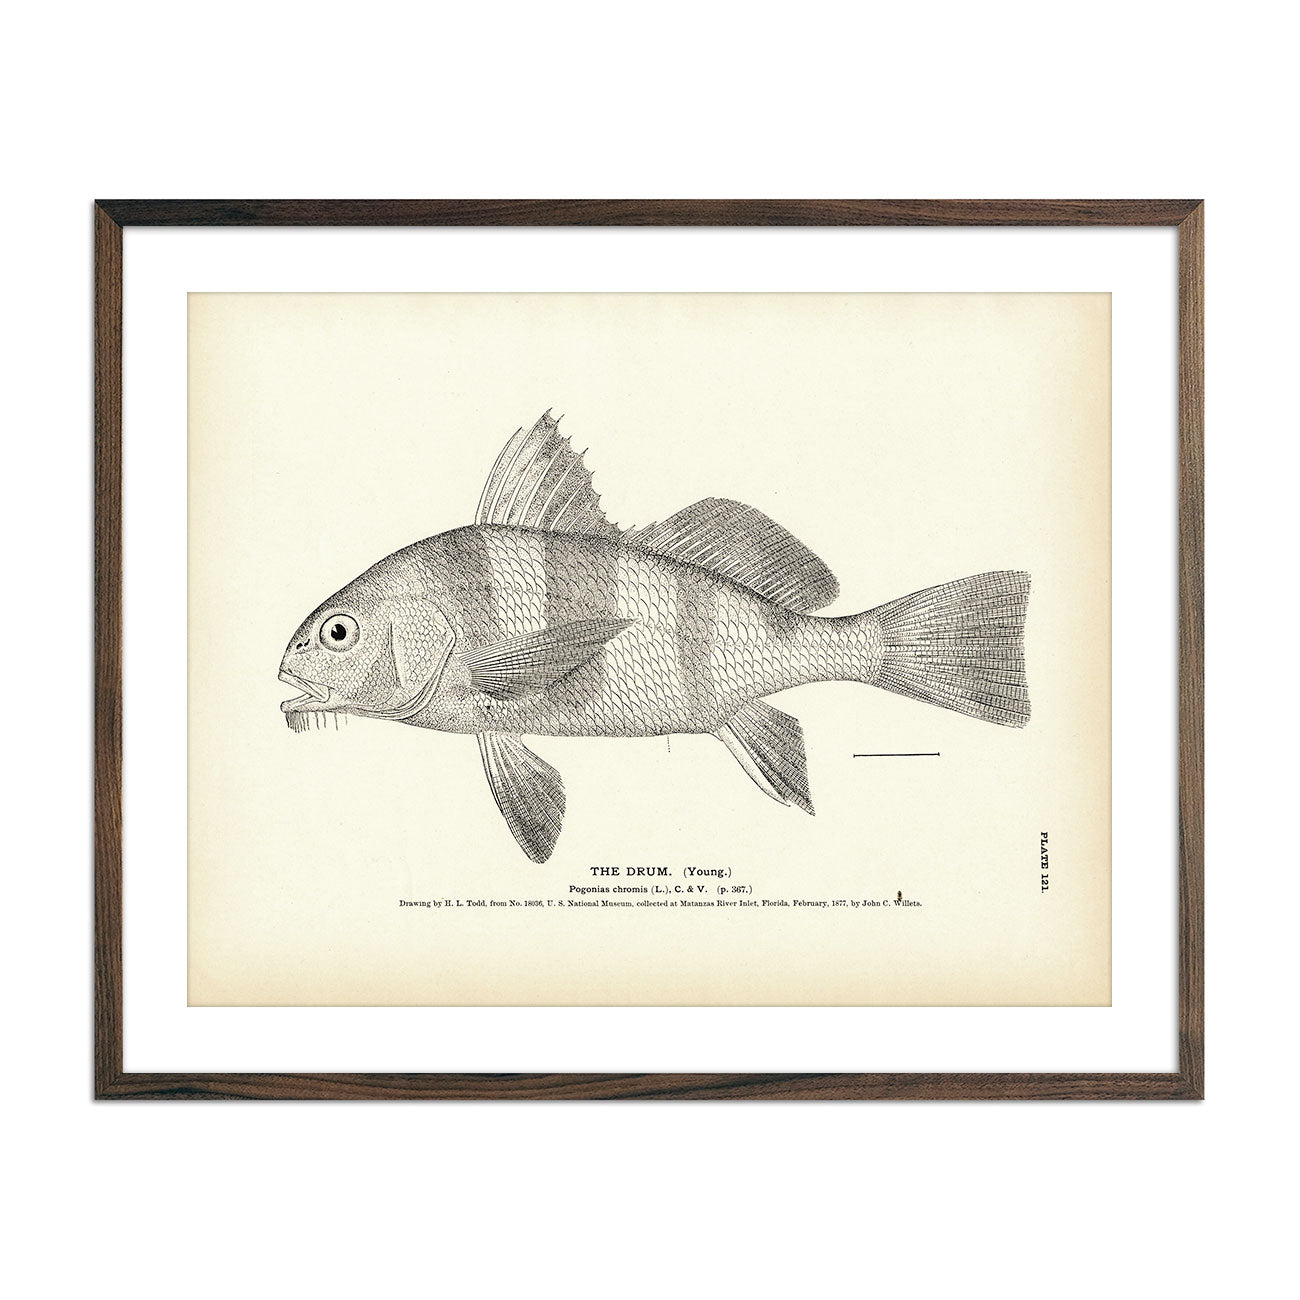 Vintage Drum (Young) fish print